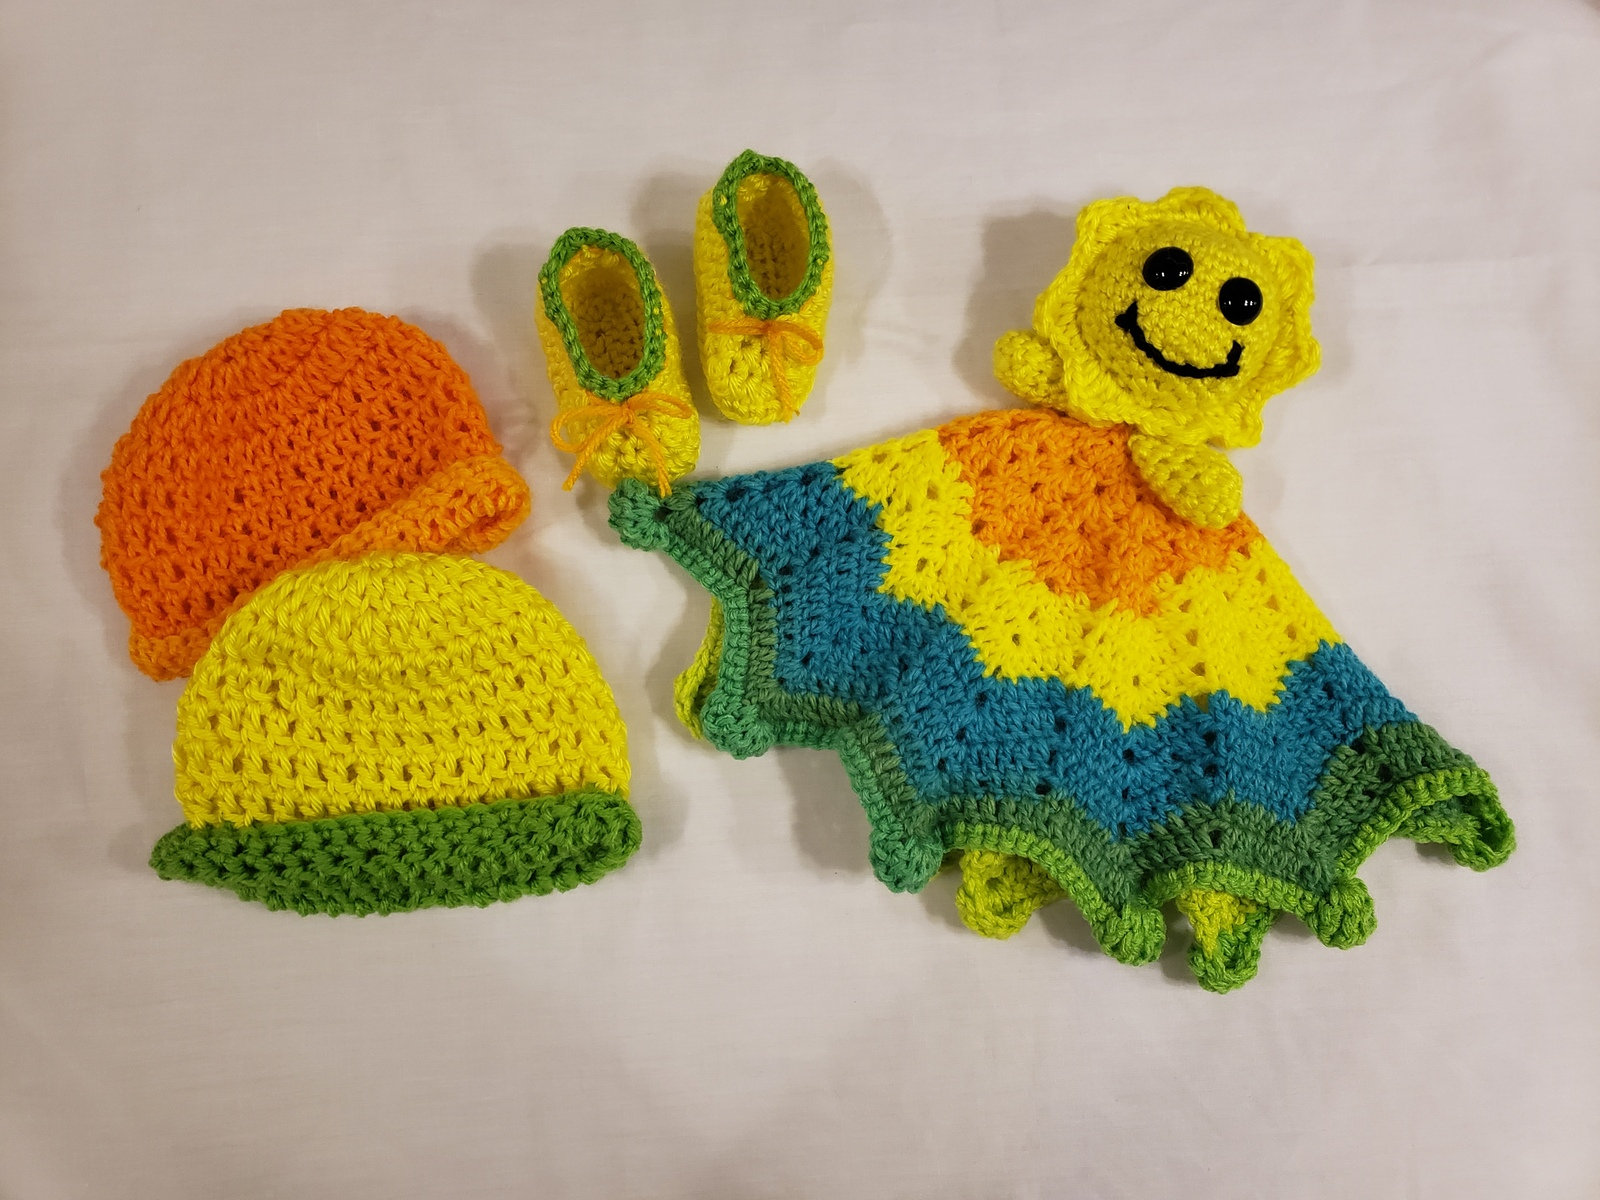 Handmade Crochet 4 pc Baby Gift Set (Sunshine Mini Lovey, Booties an 2 hats) Uni